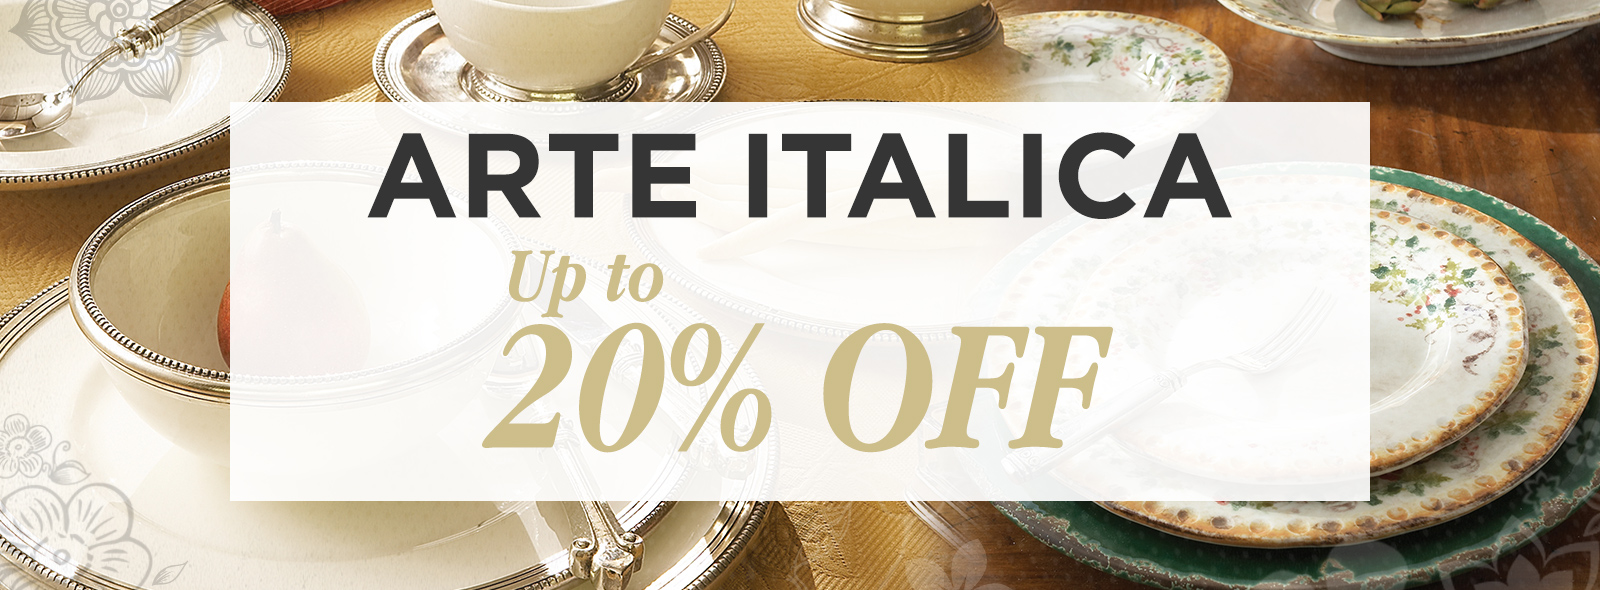 Arte Italica Tableware & Decor